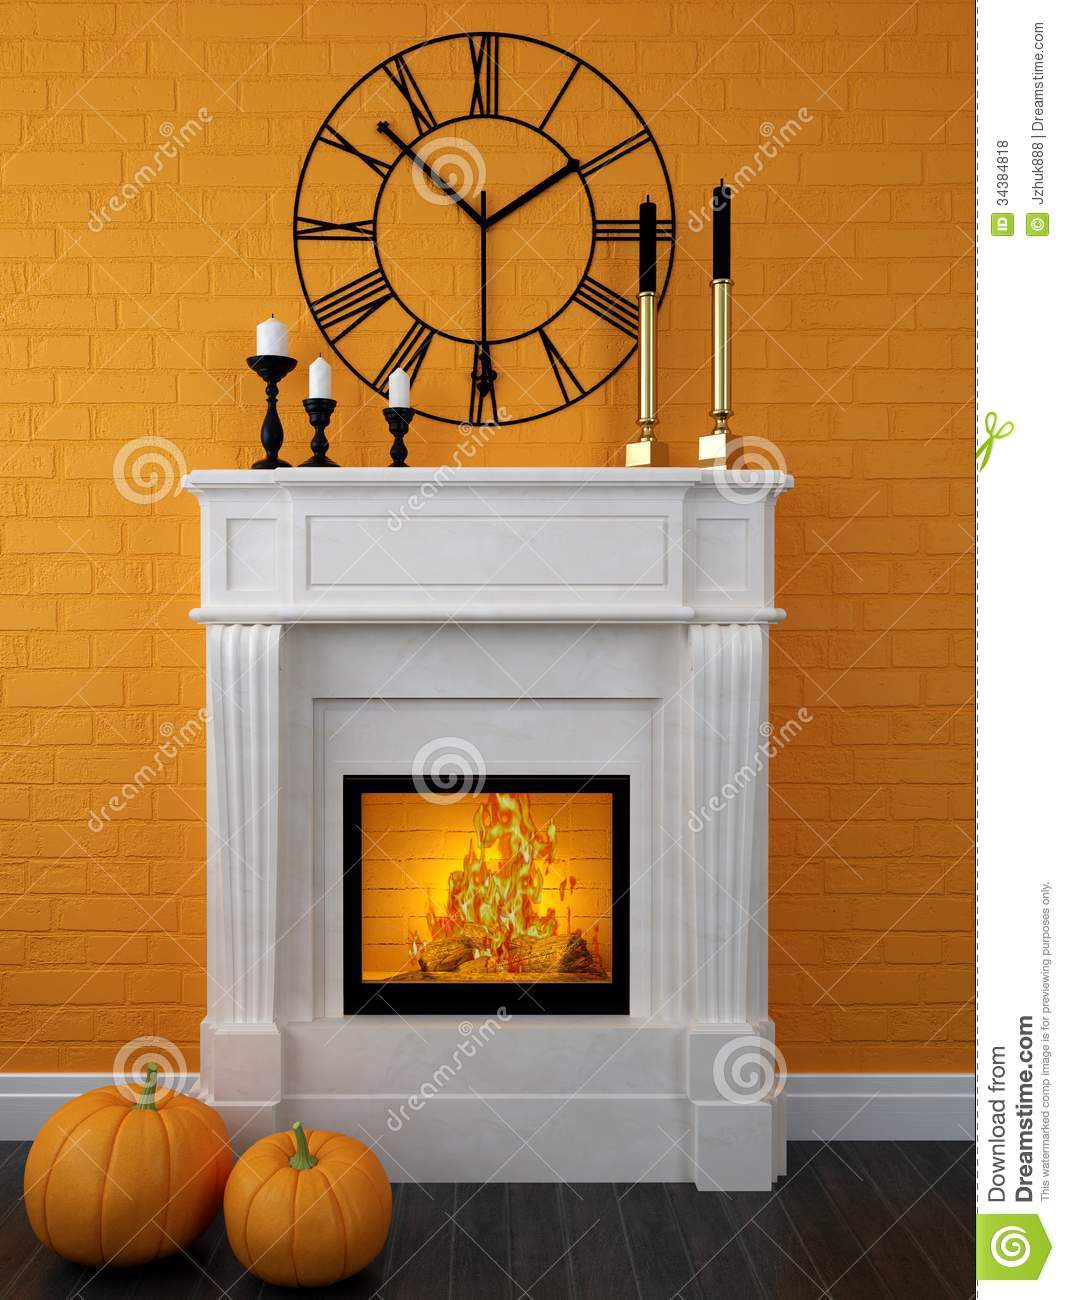 White fireplace decorated for halloween royalty free stock - Chimeneas de adorno ...